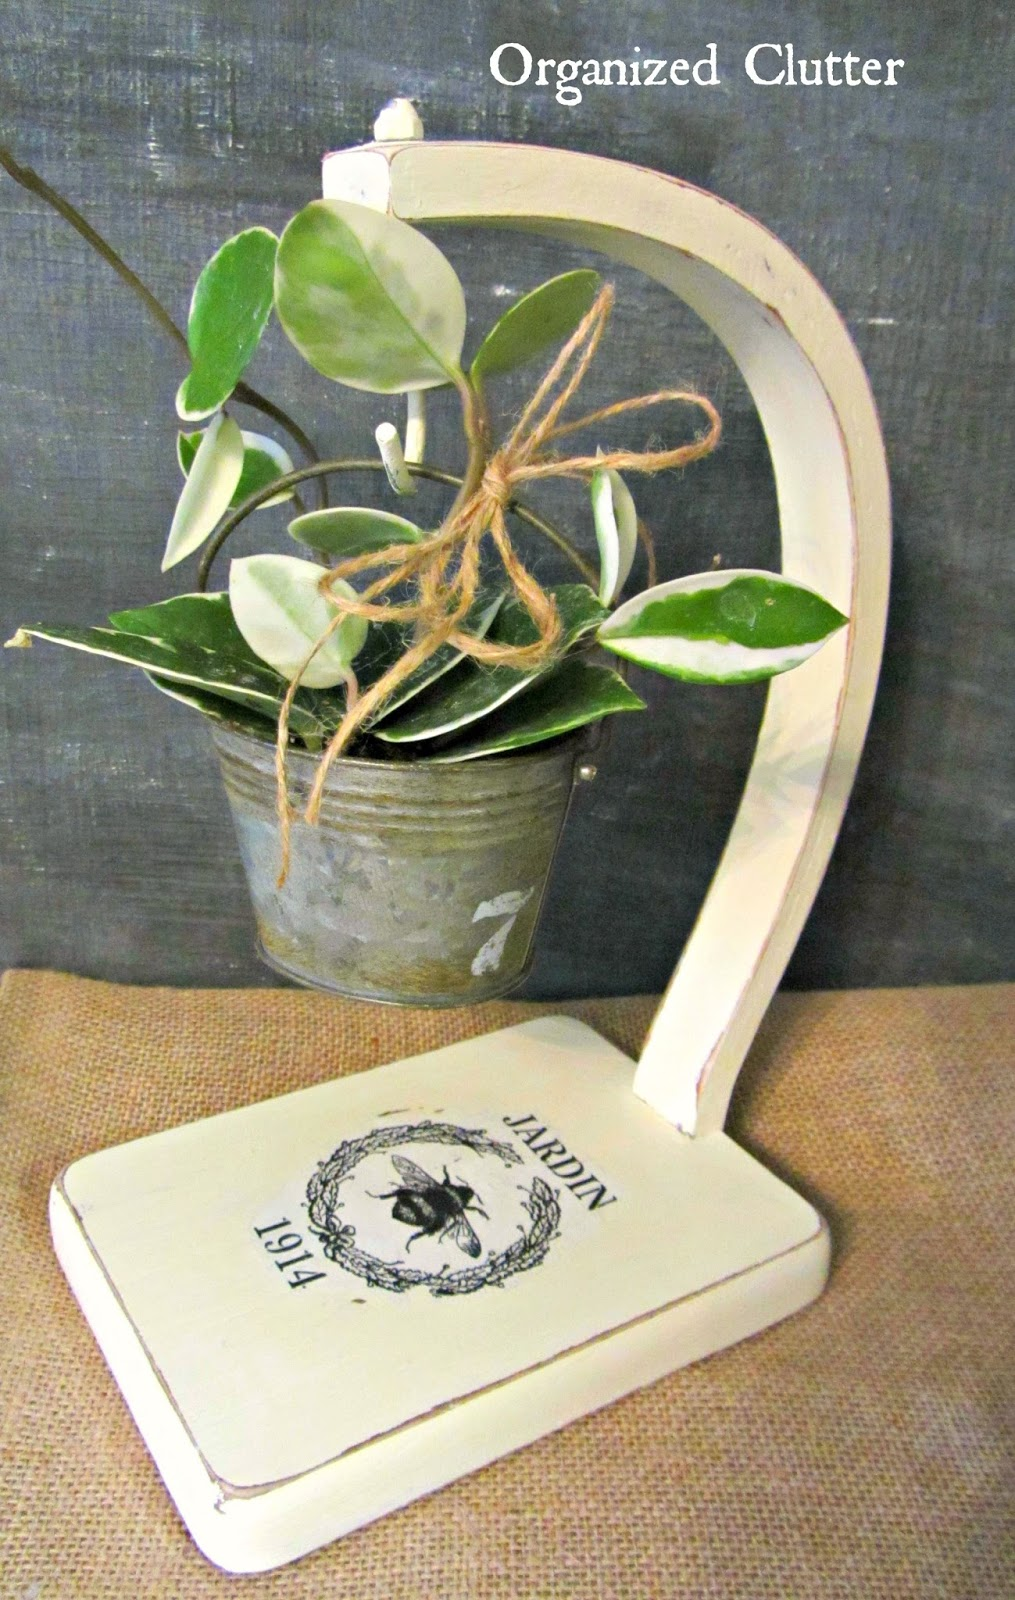 Repurposed Banana Stand Plant Holder www.organizedclutter.net